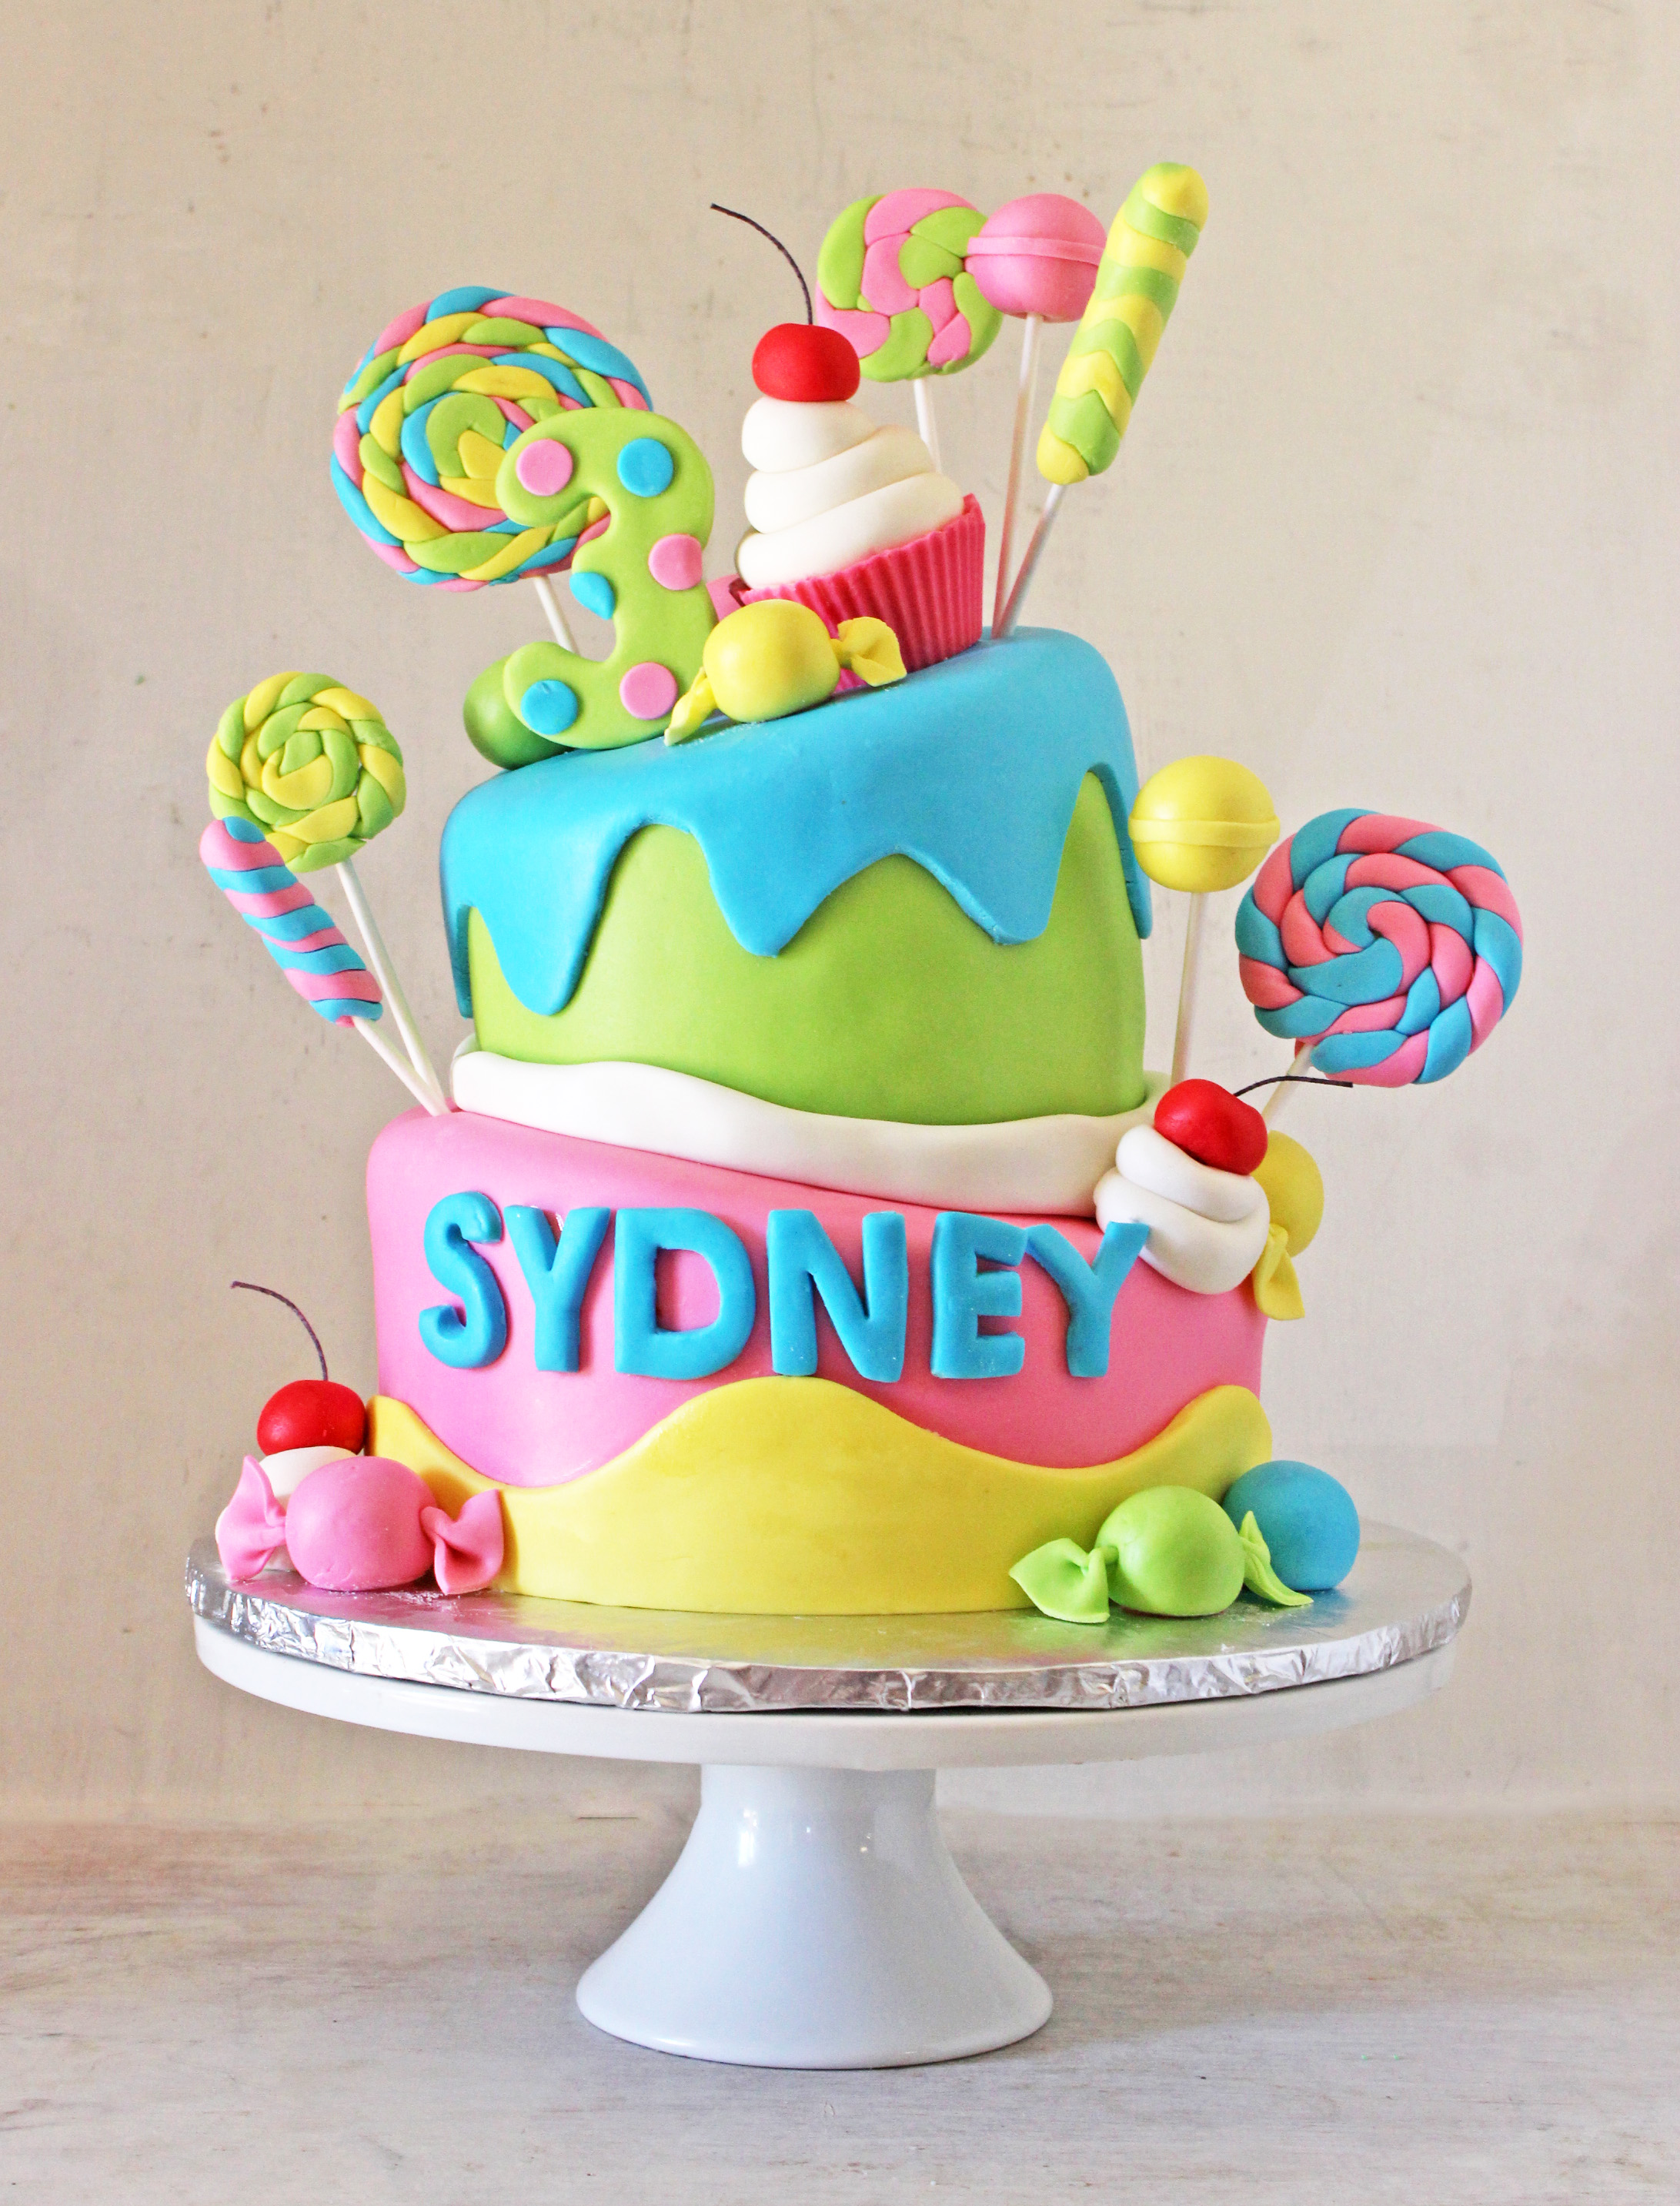 Topsy-Turvy Candy Cake nw